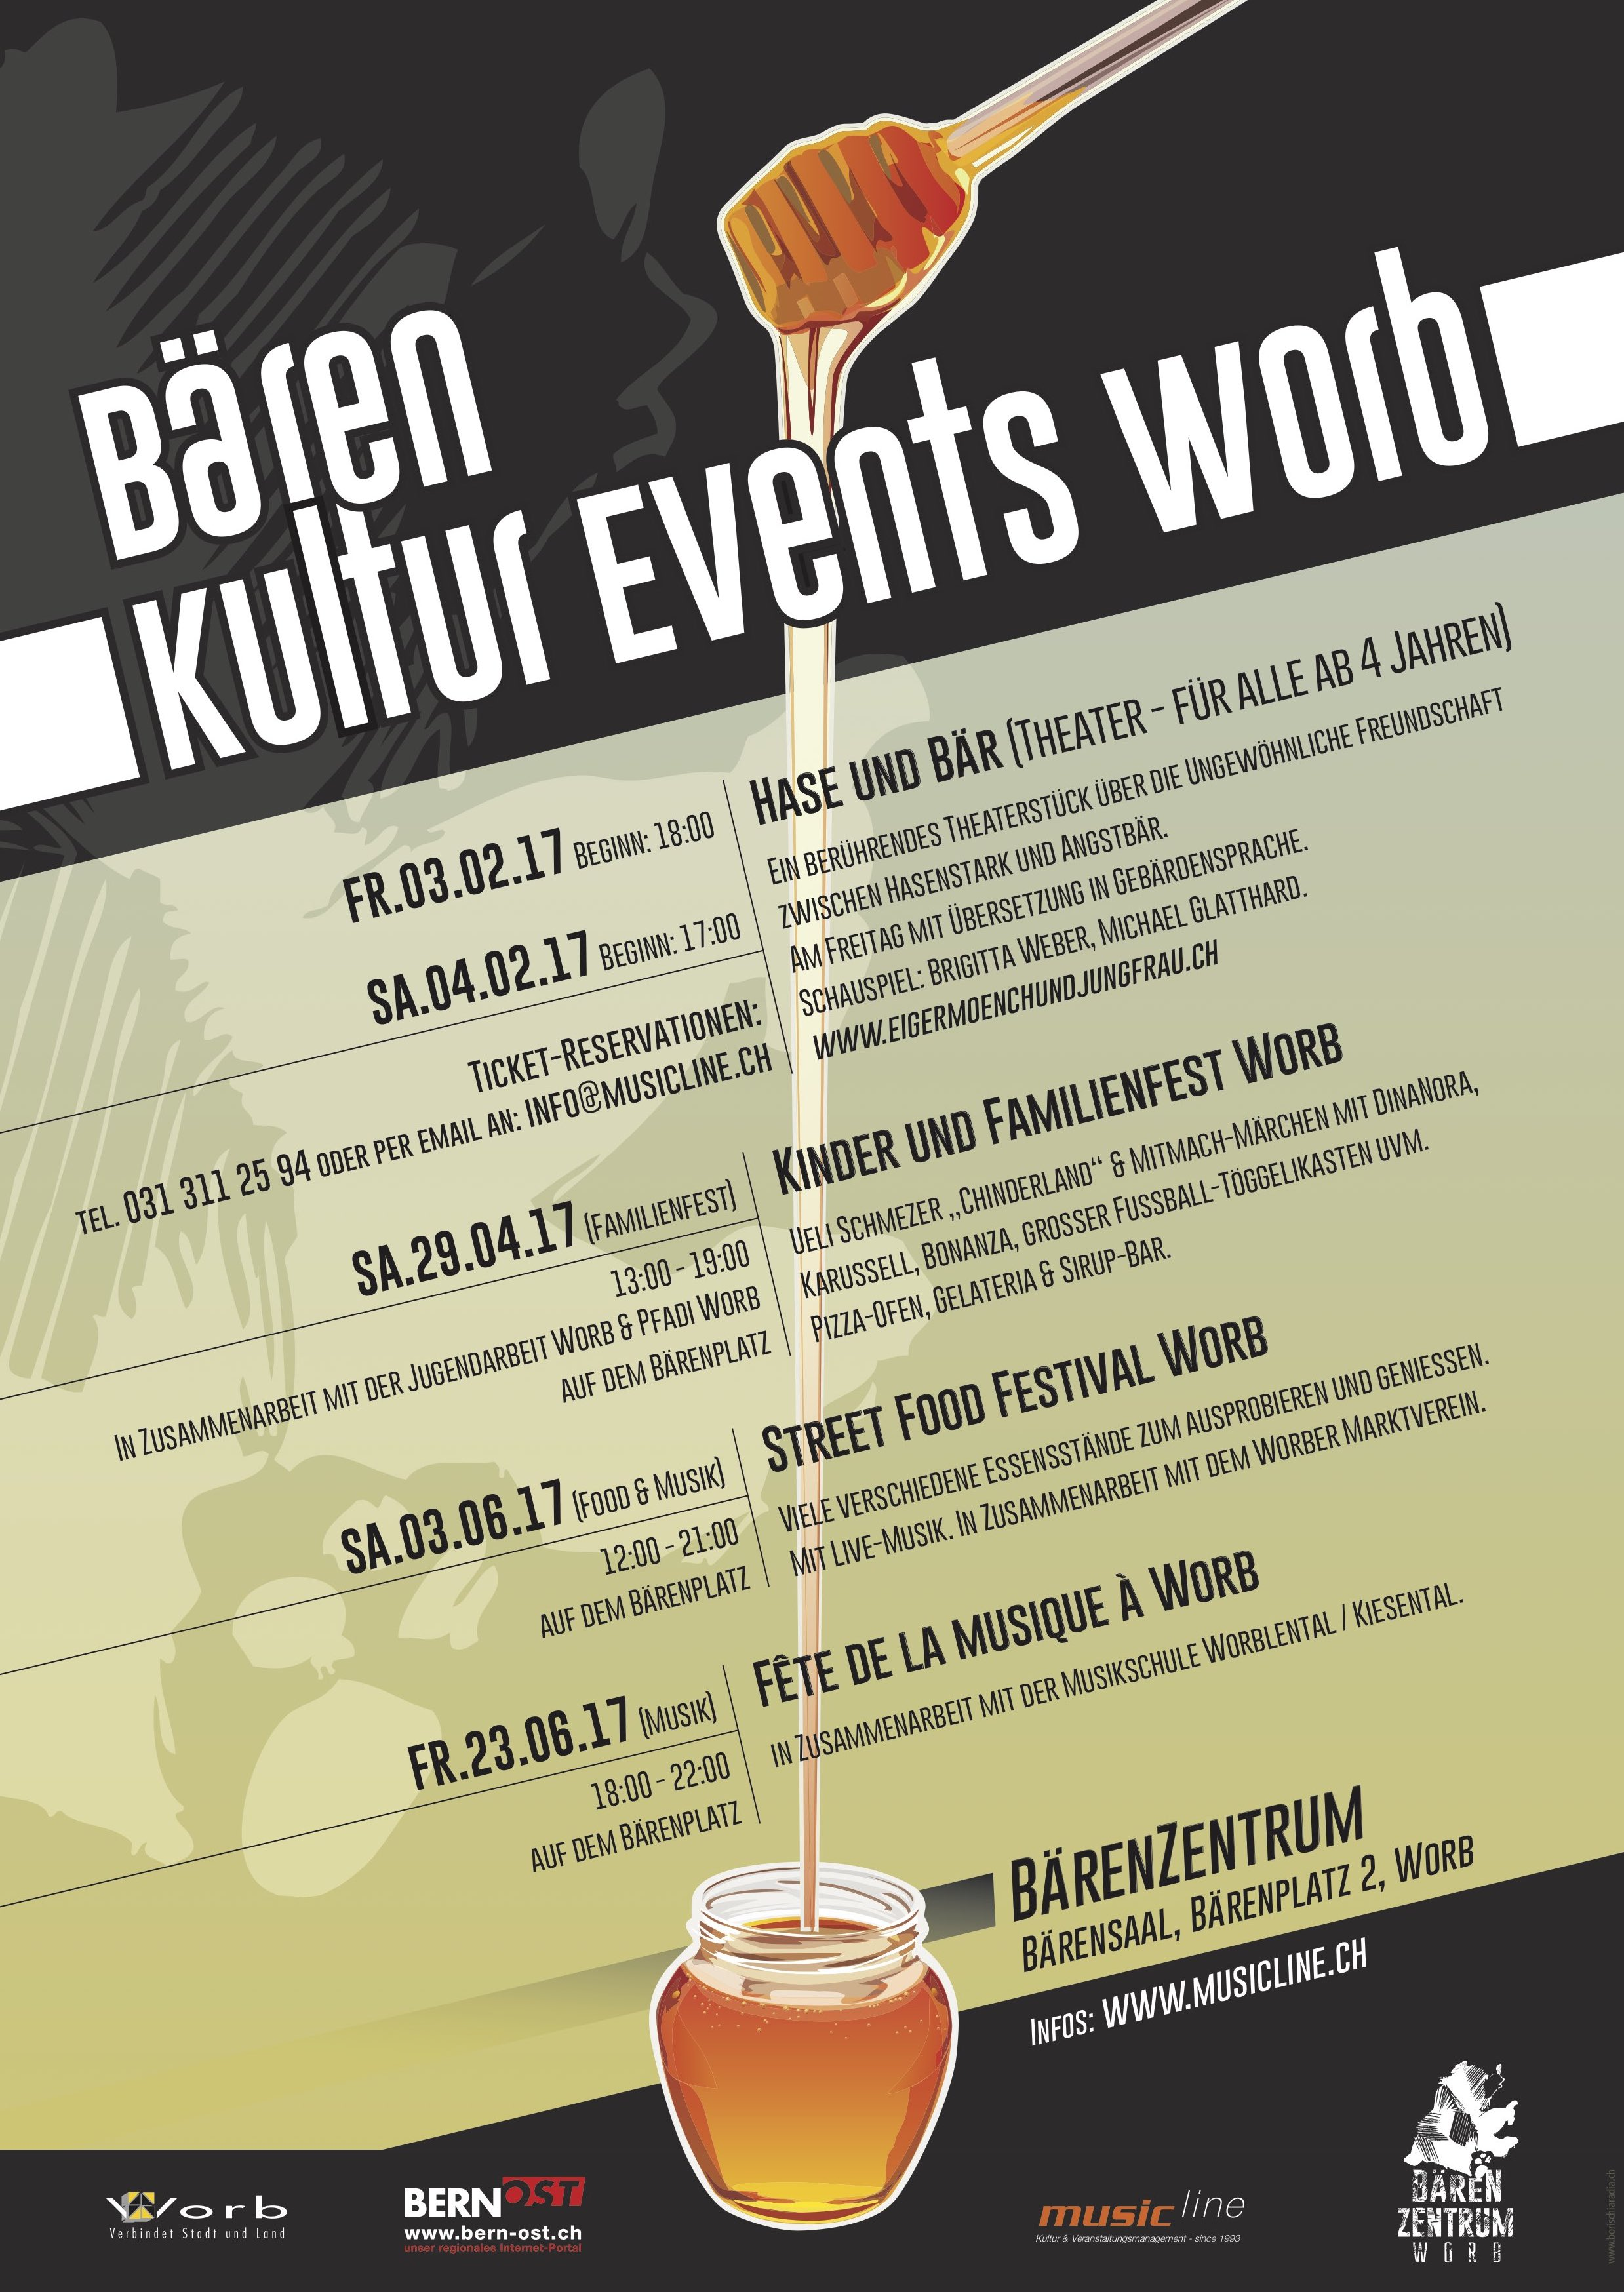 Baeren Kultur Events